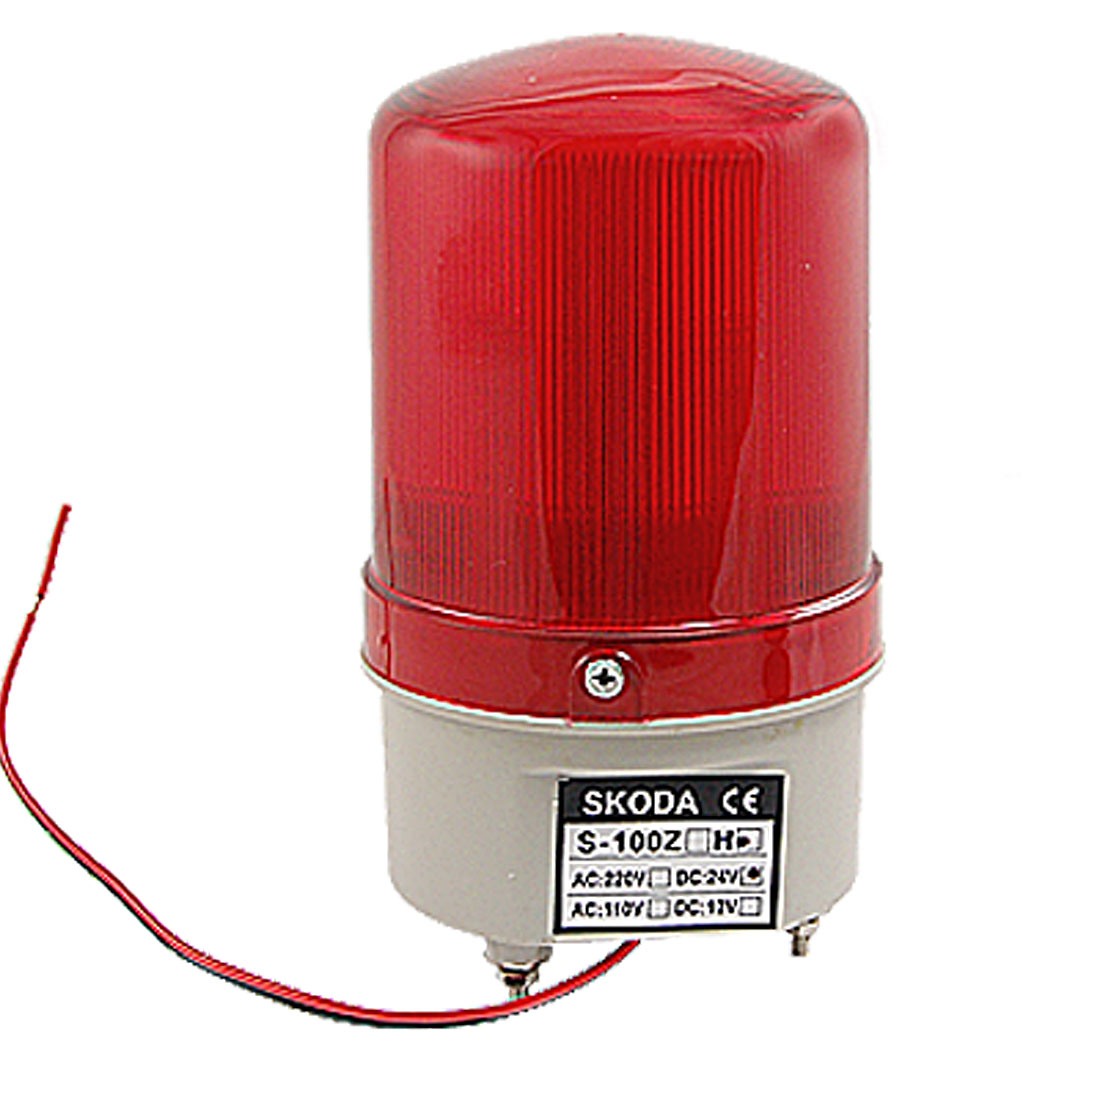 90dB DC 24V Industrial Red LED Tower Signal Buzzer Sound Alarm Warning Light